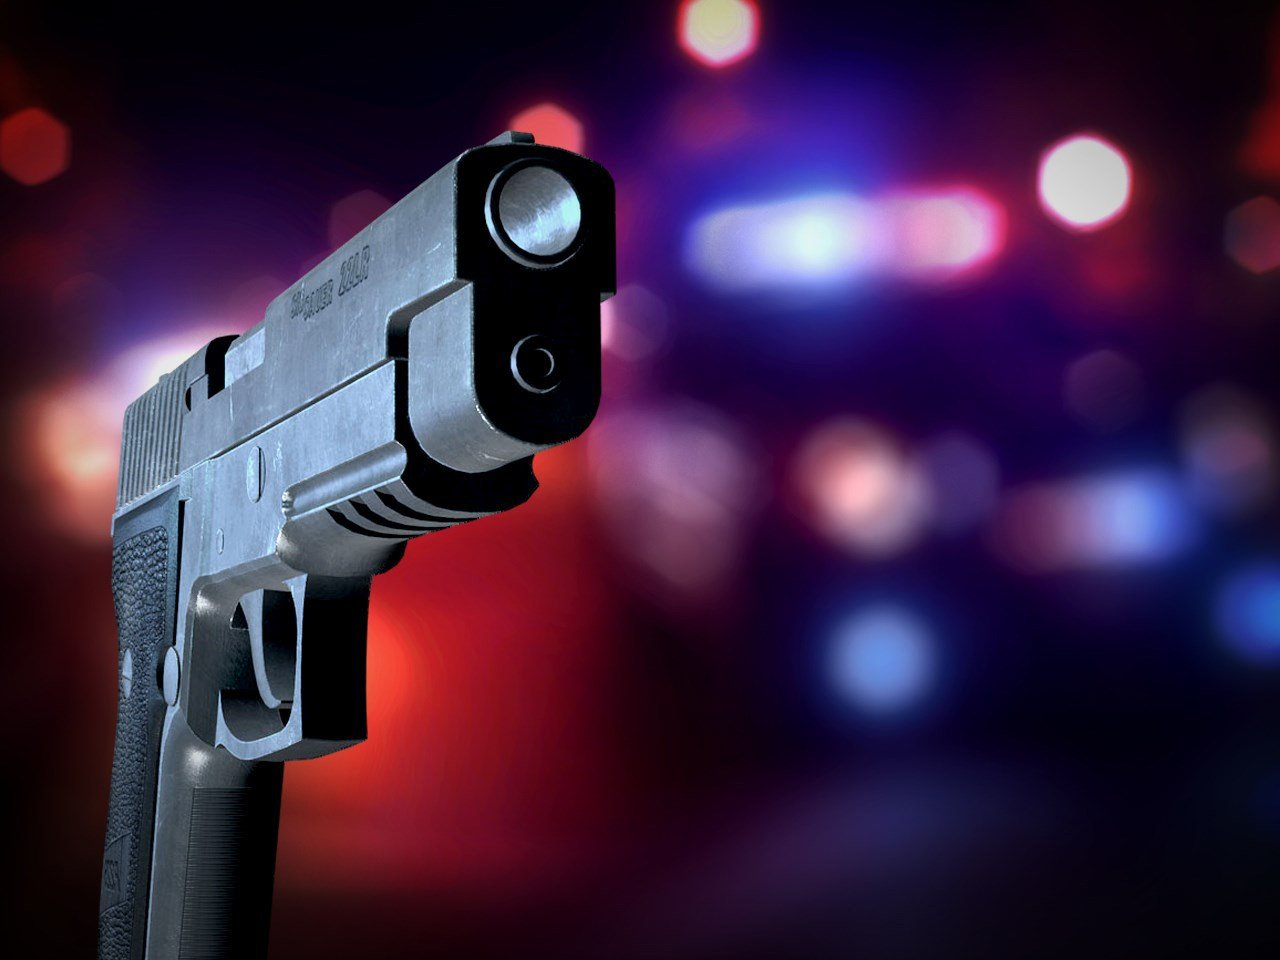 Woman injured in Crestview home invasion shooting